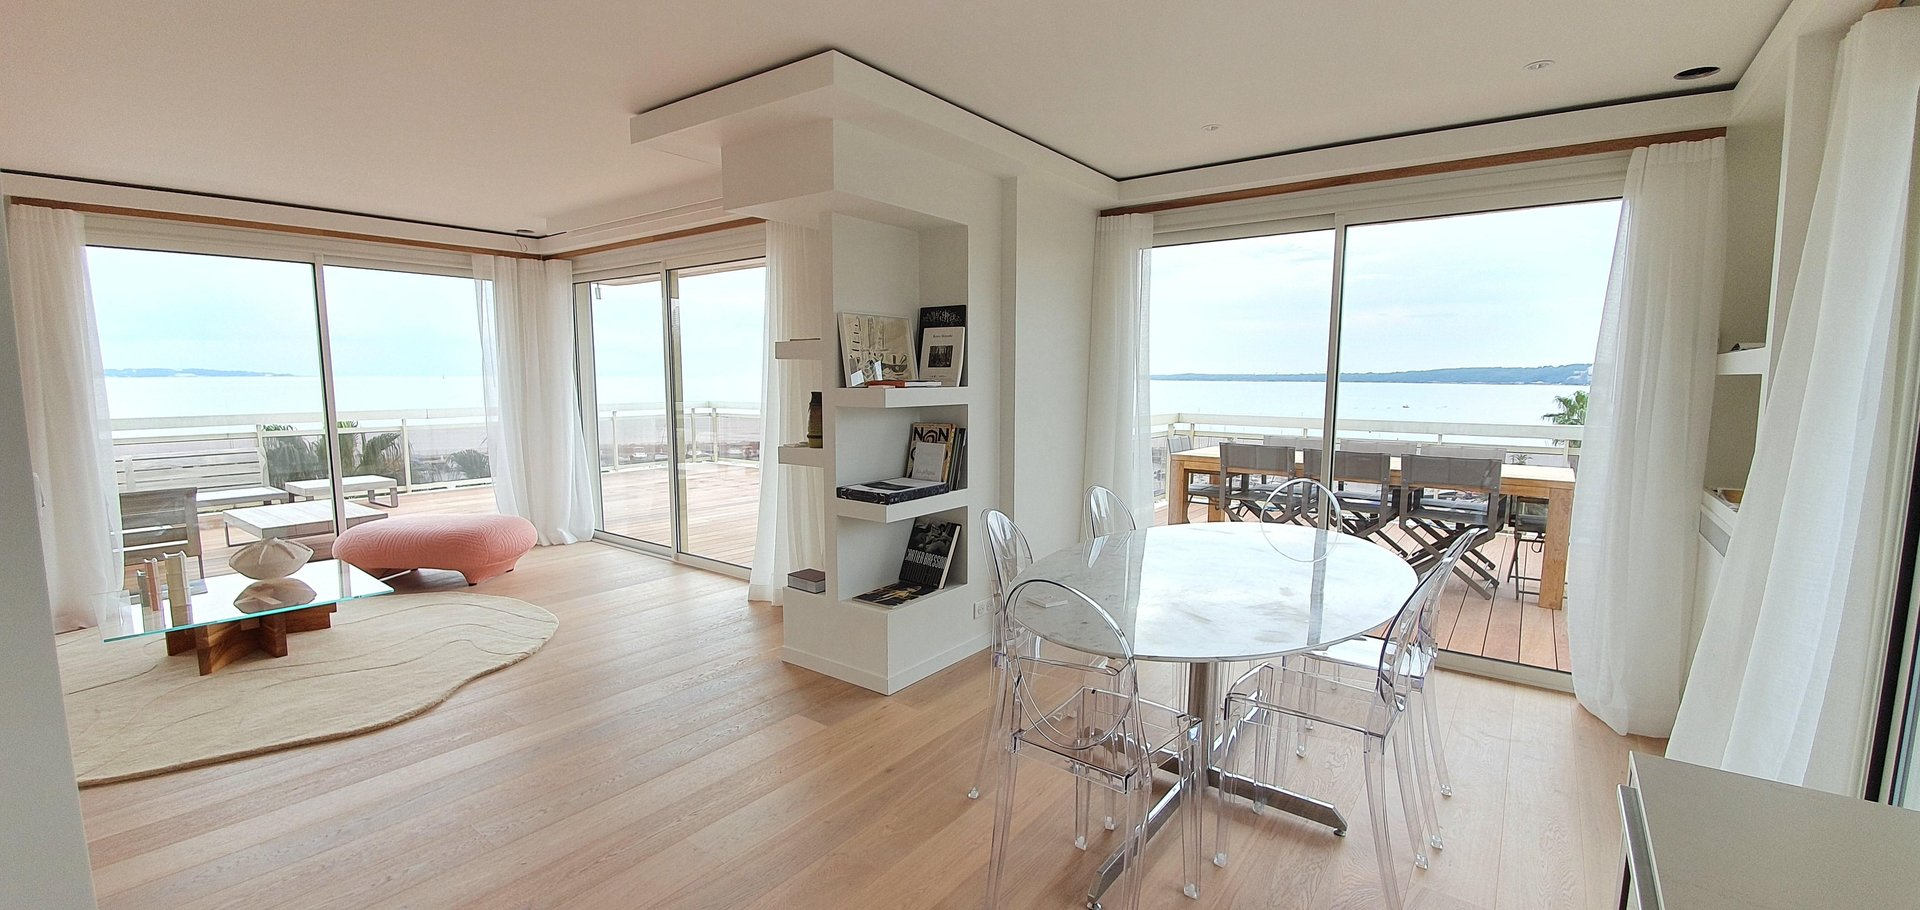 Penthouse sea view 3 bedrooms 91 sqm apartment Terrasse 151 sqm